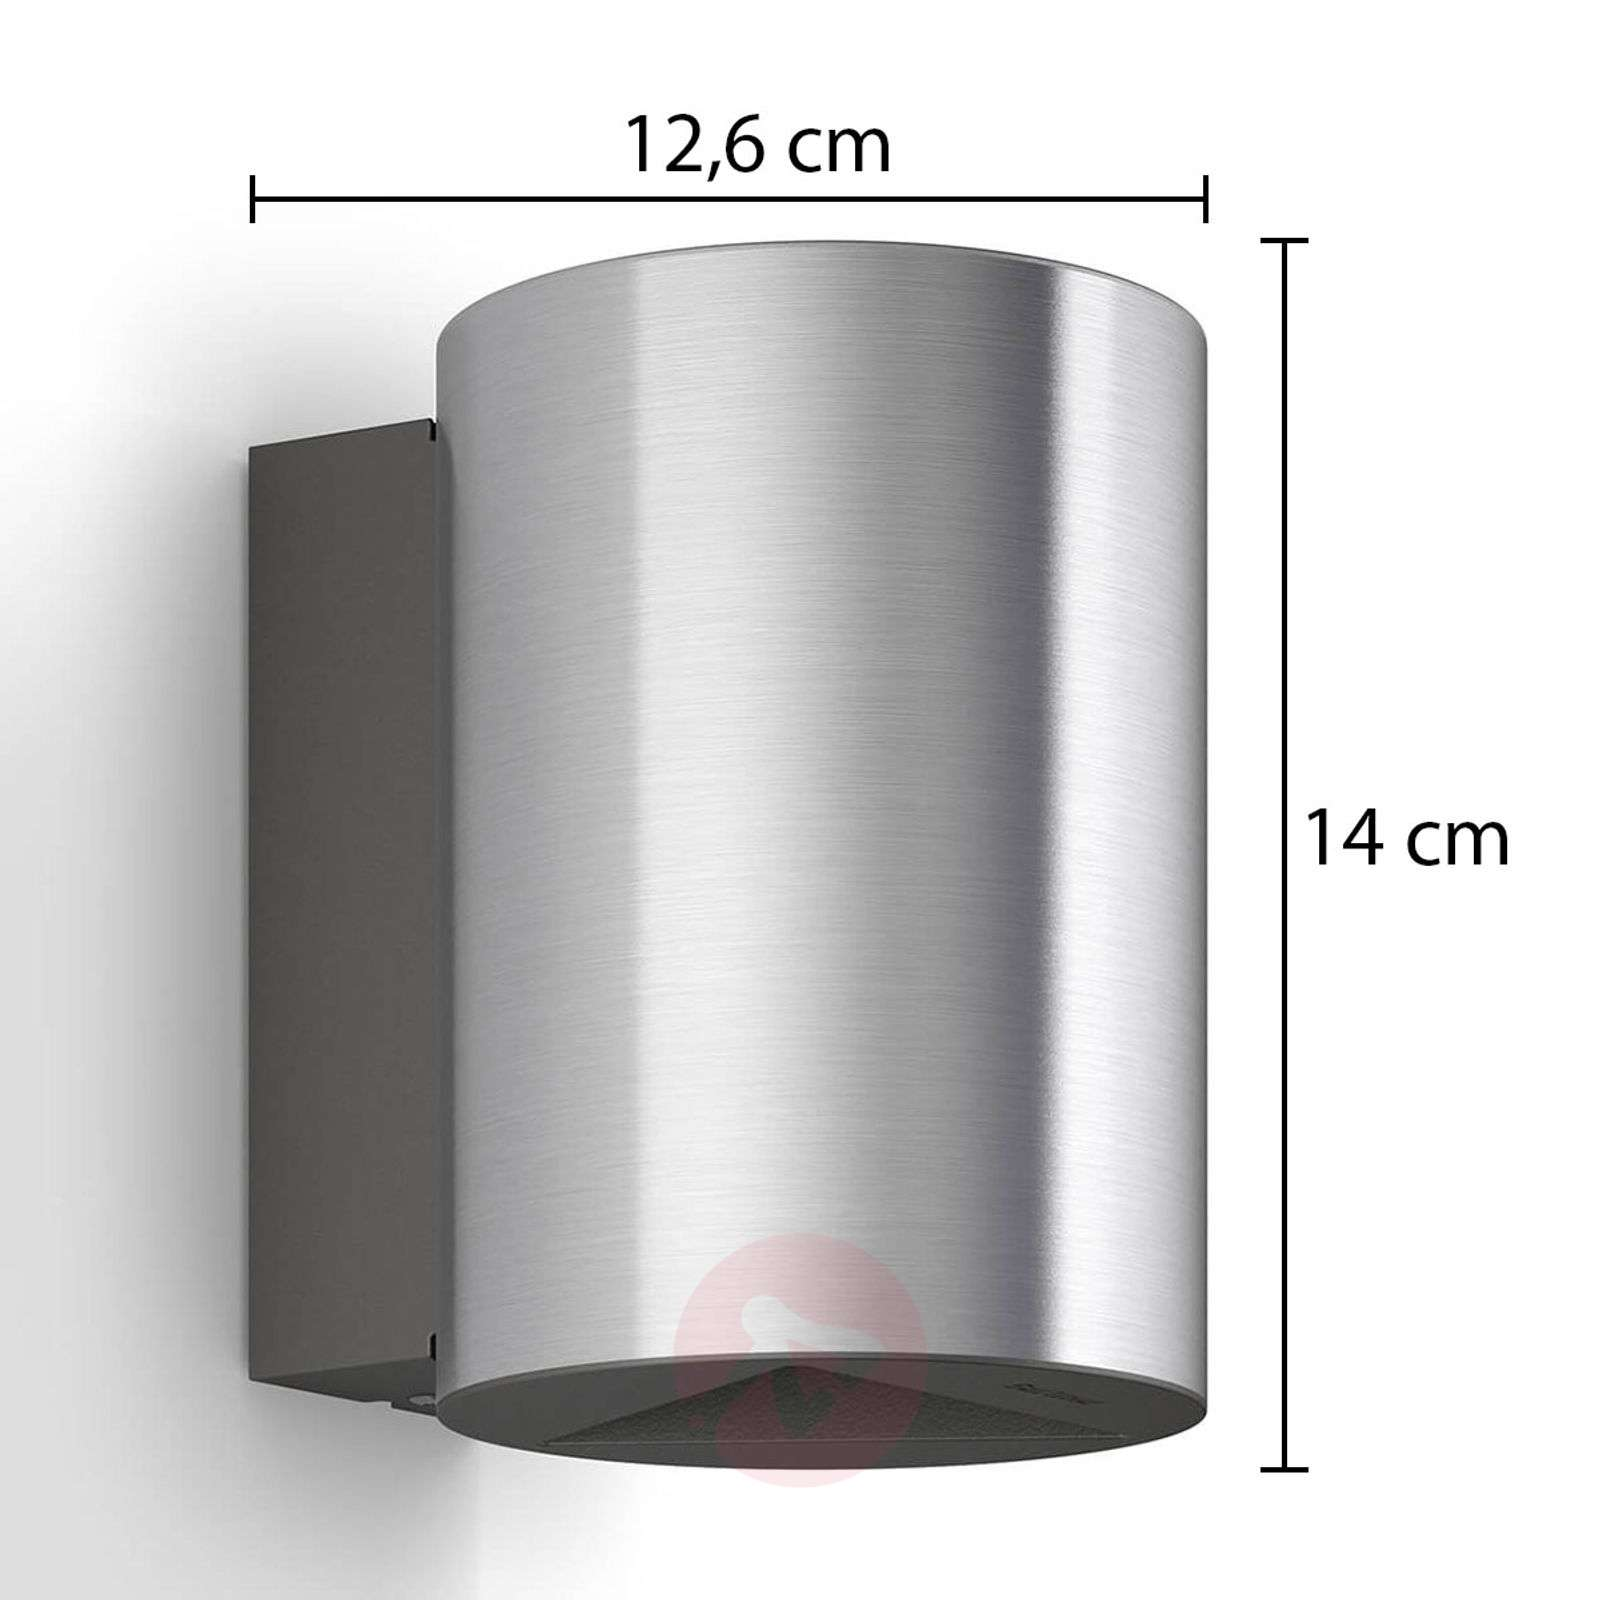 Buxus LED outdoor wall lamp, stainless steel-7531924-012